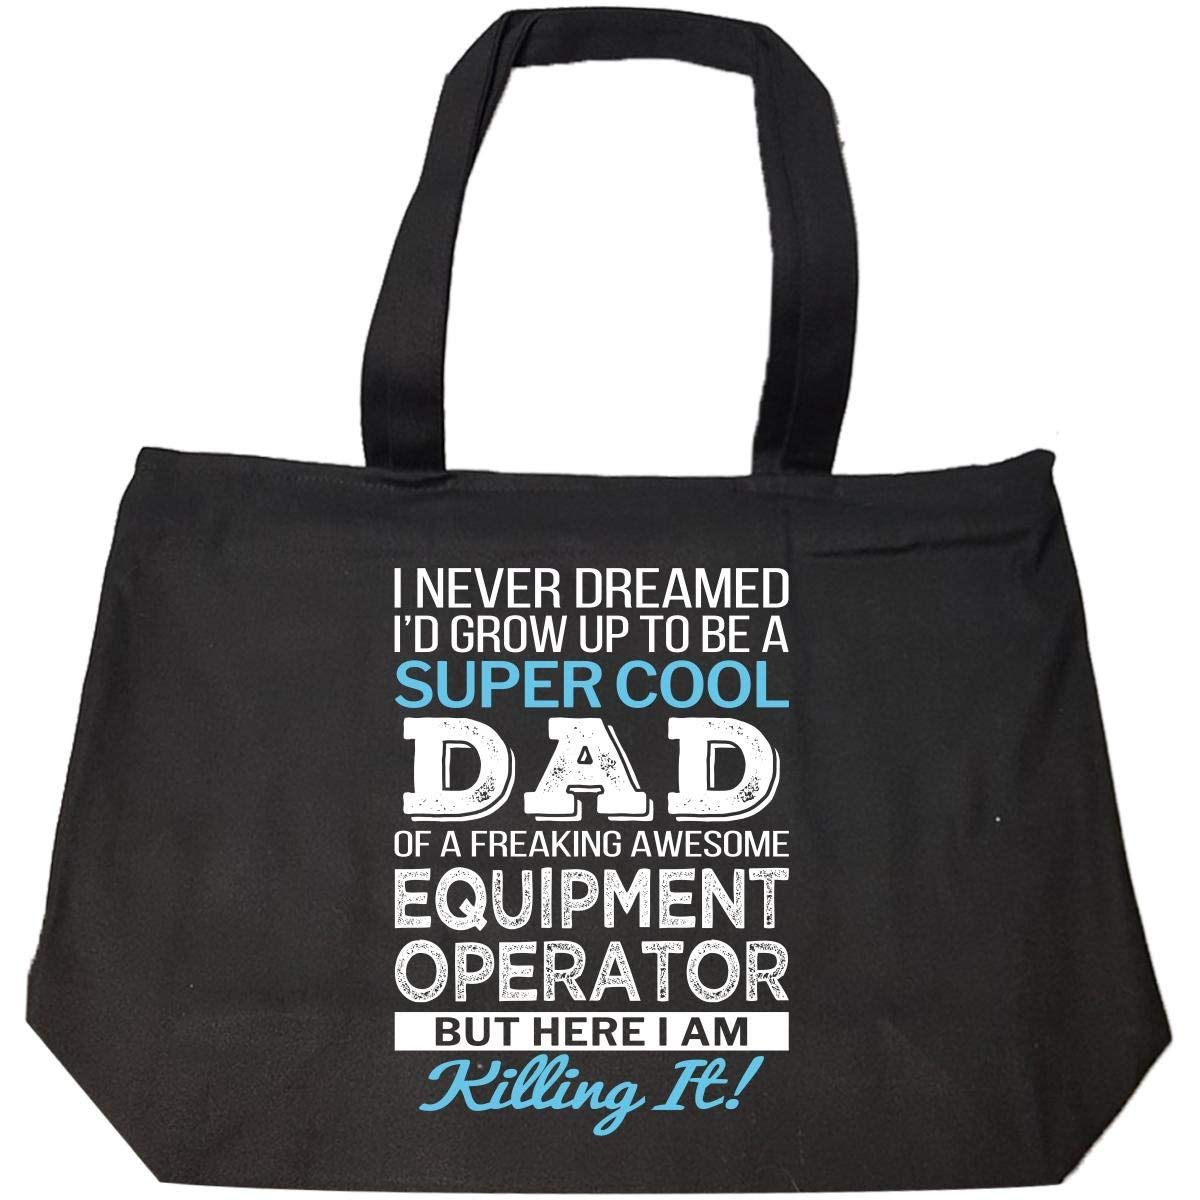 Super Cool Dad Of Awesome Equipment Operator Dad Funny Gift - Tote Bag With Zip